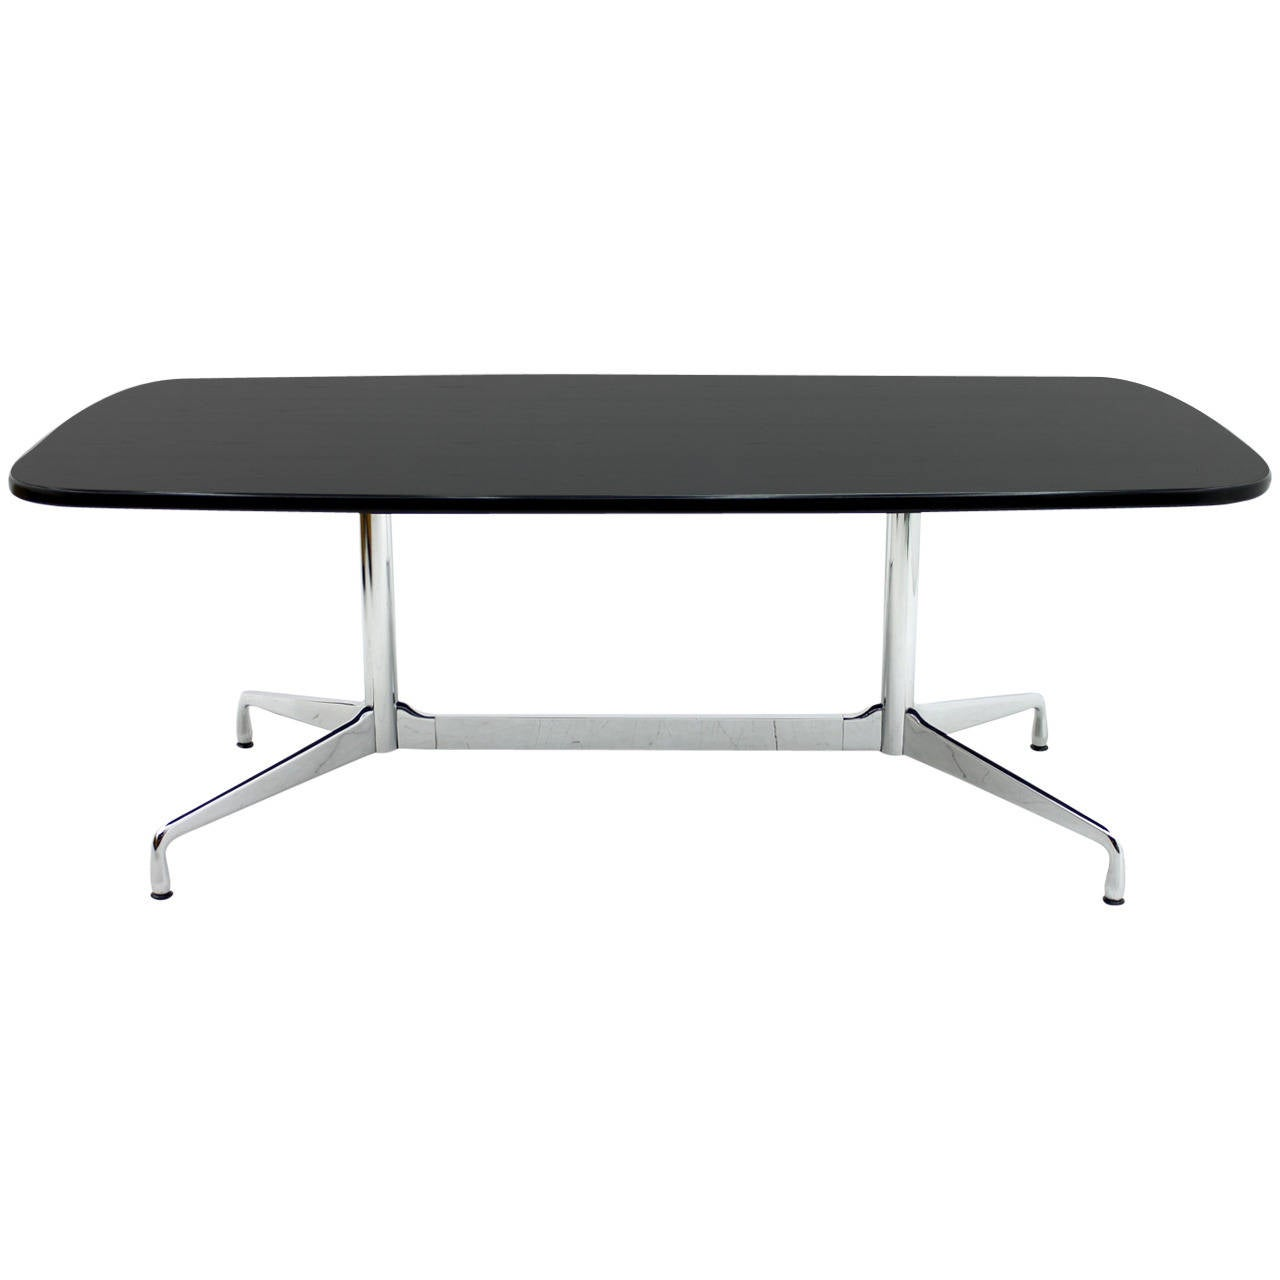 eames dining or conference table desk vitra at 1stdibs. Black Bedroom Furniture Sets. Home Design Ideas